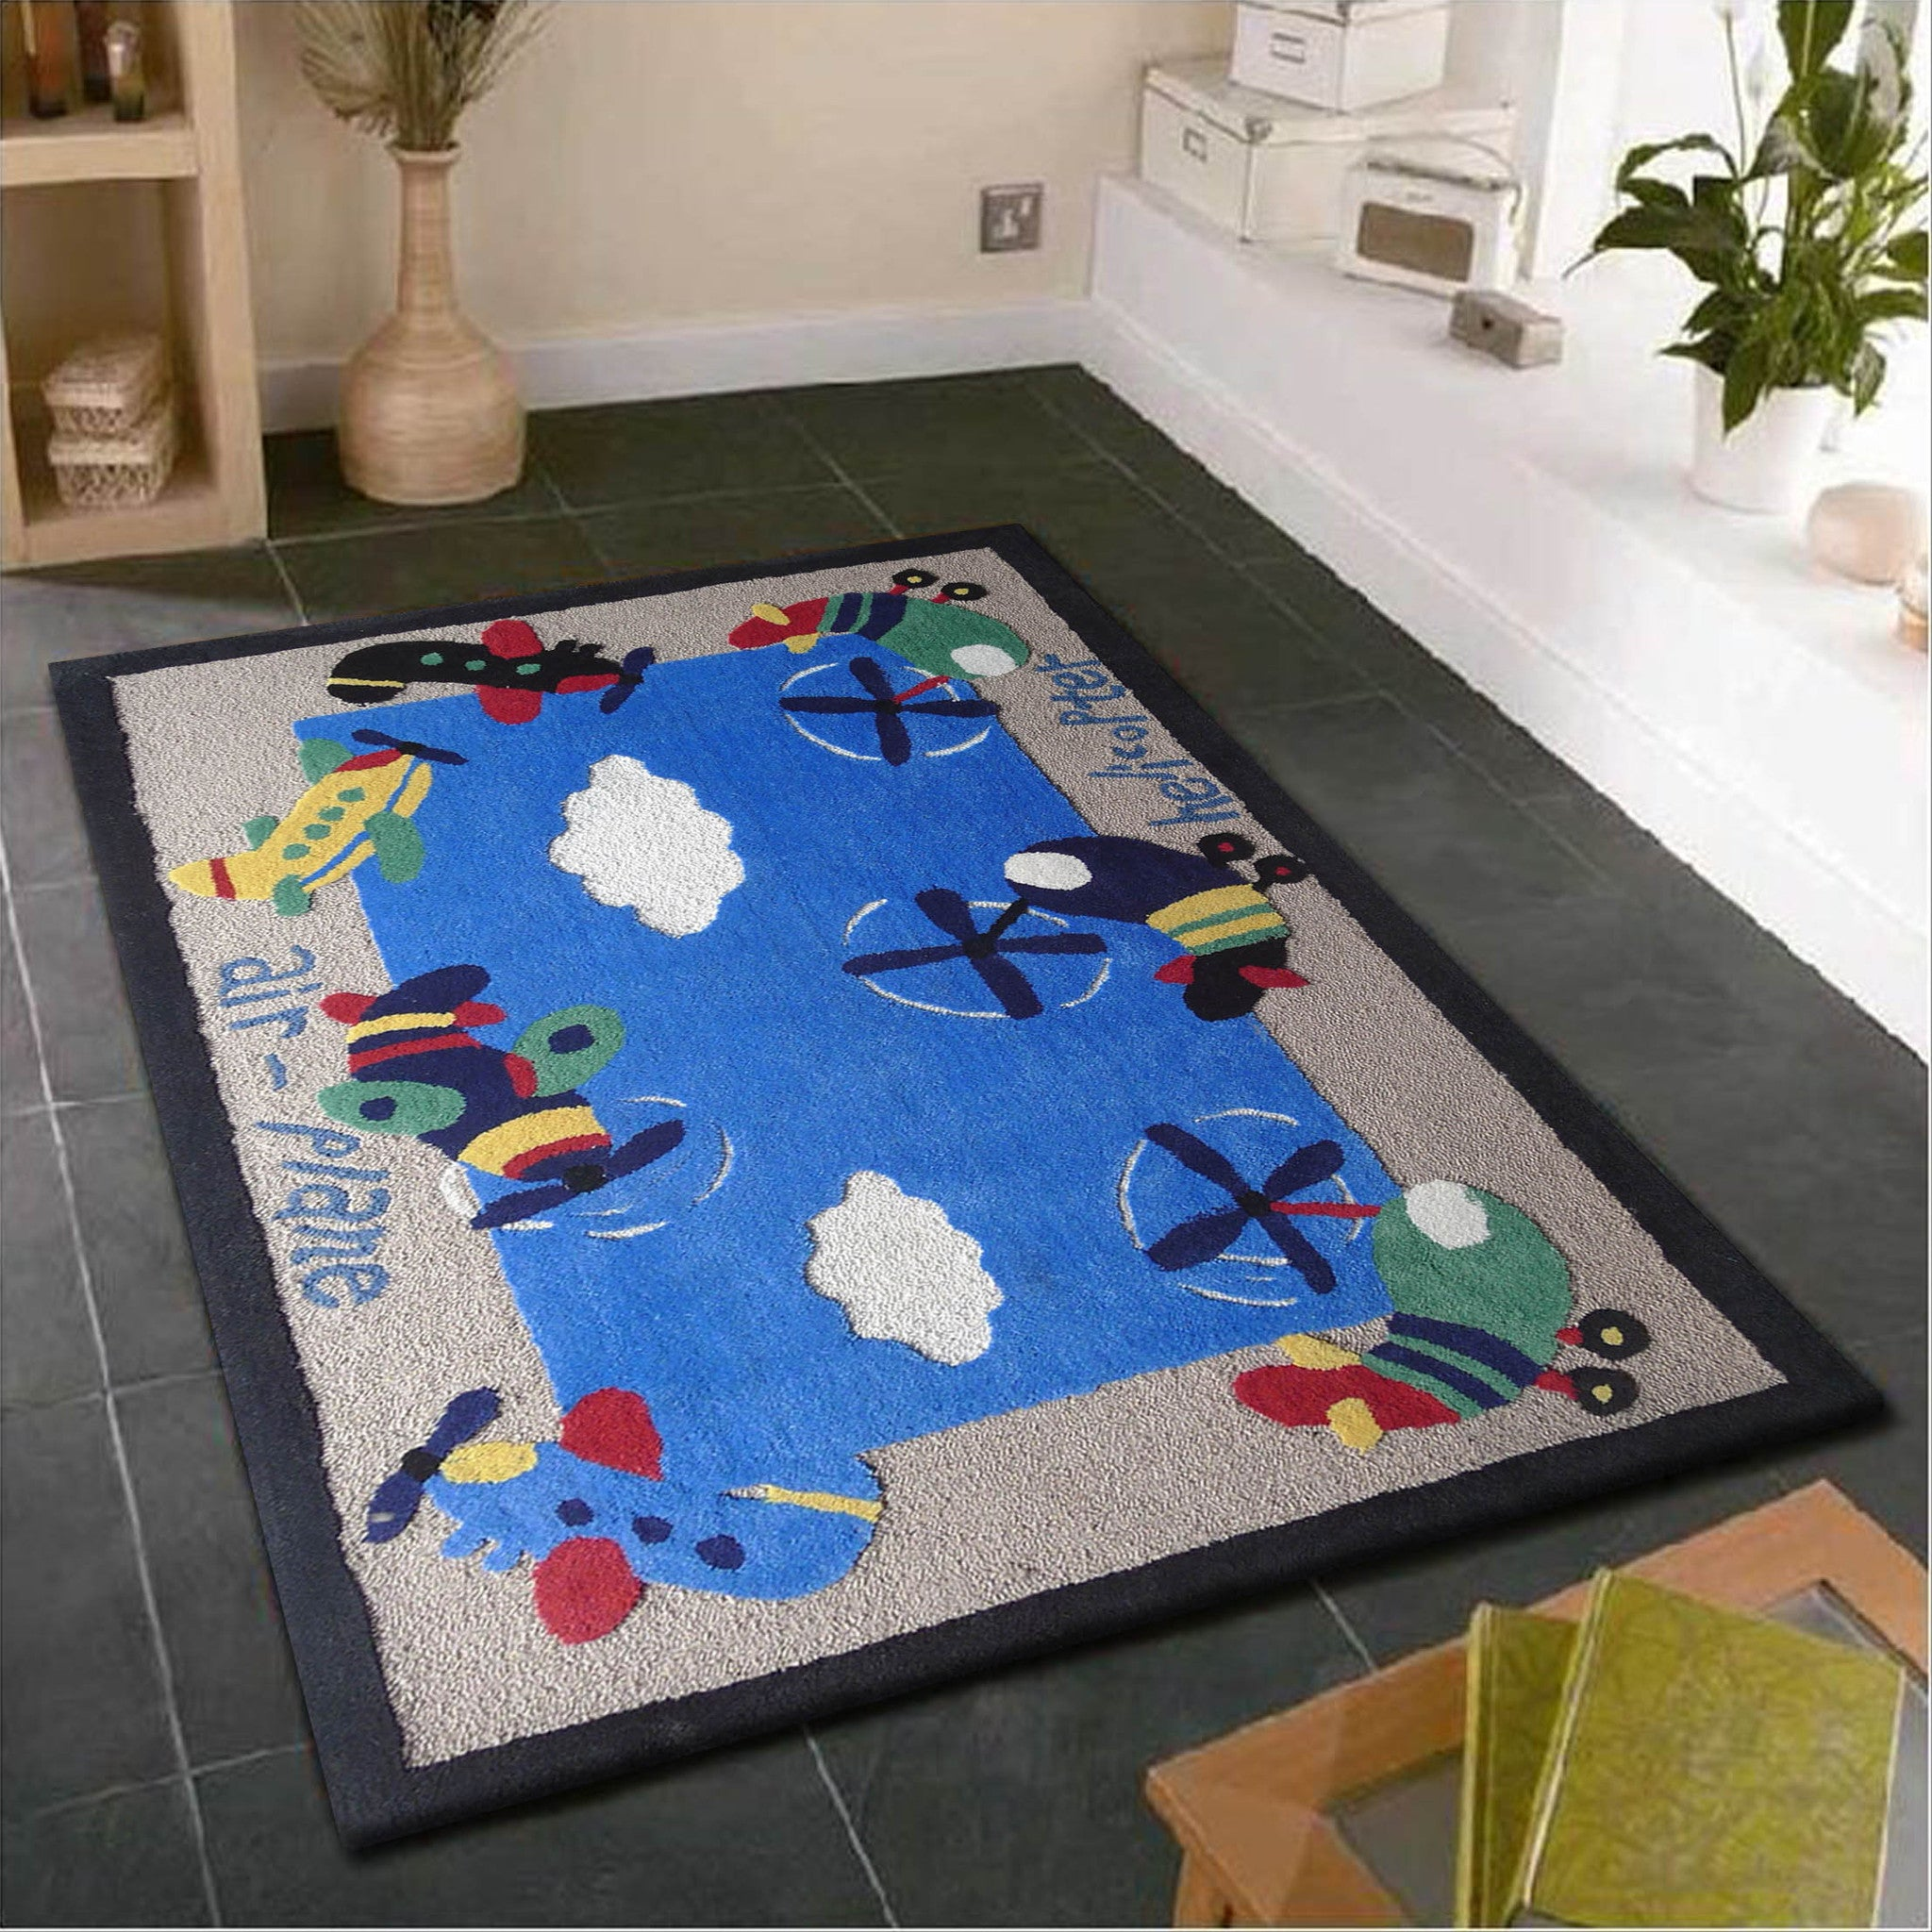 Delicieux Kids Bedroom Area Rug With Air Plane Designs ...